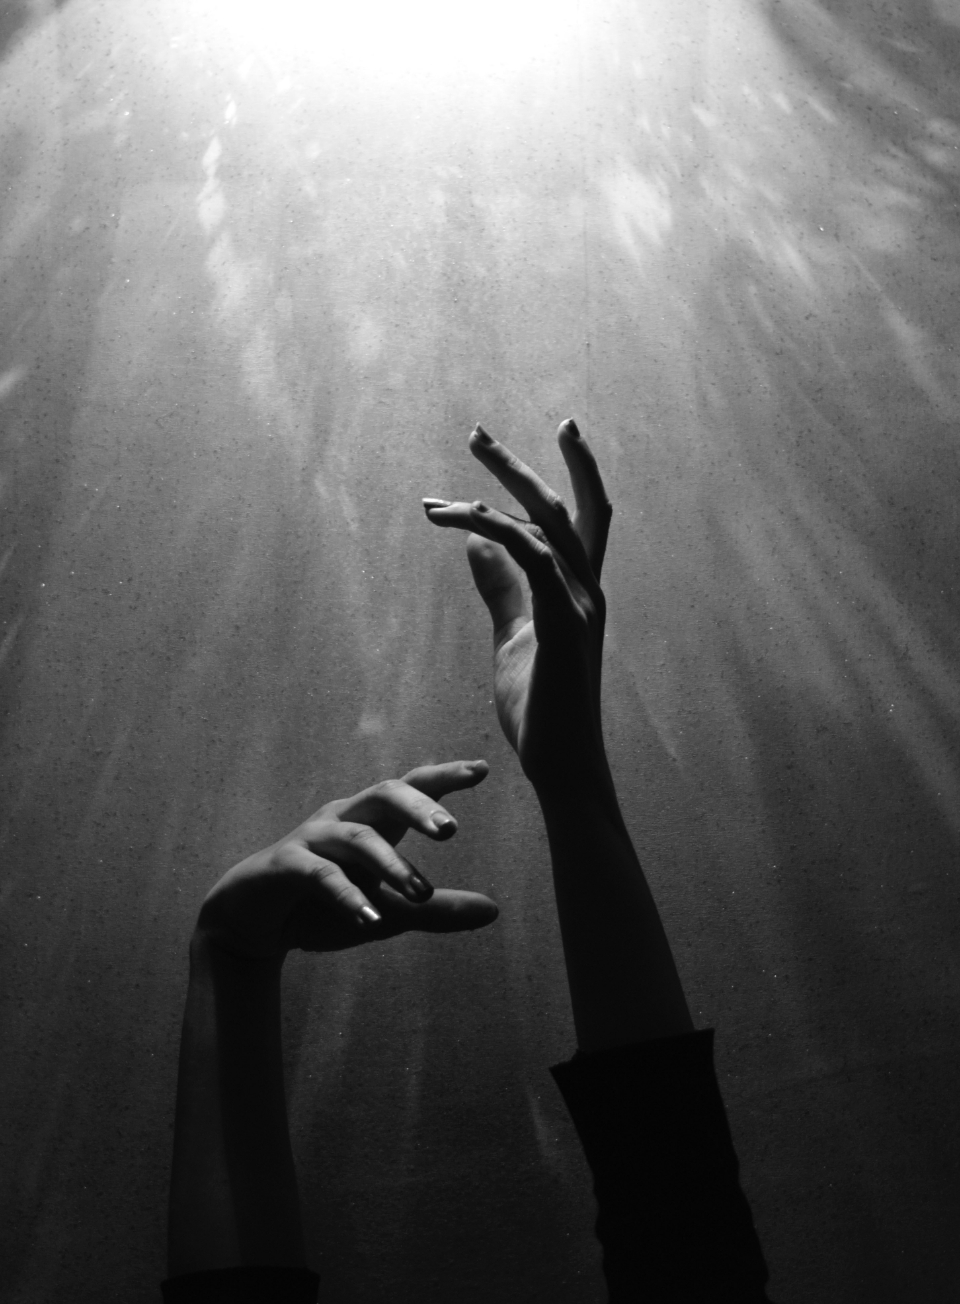 hands darkness light creative artistic gloomy mysterious energy supernatural abstract